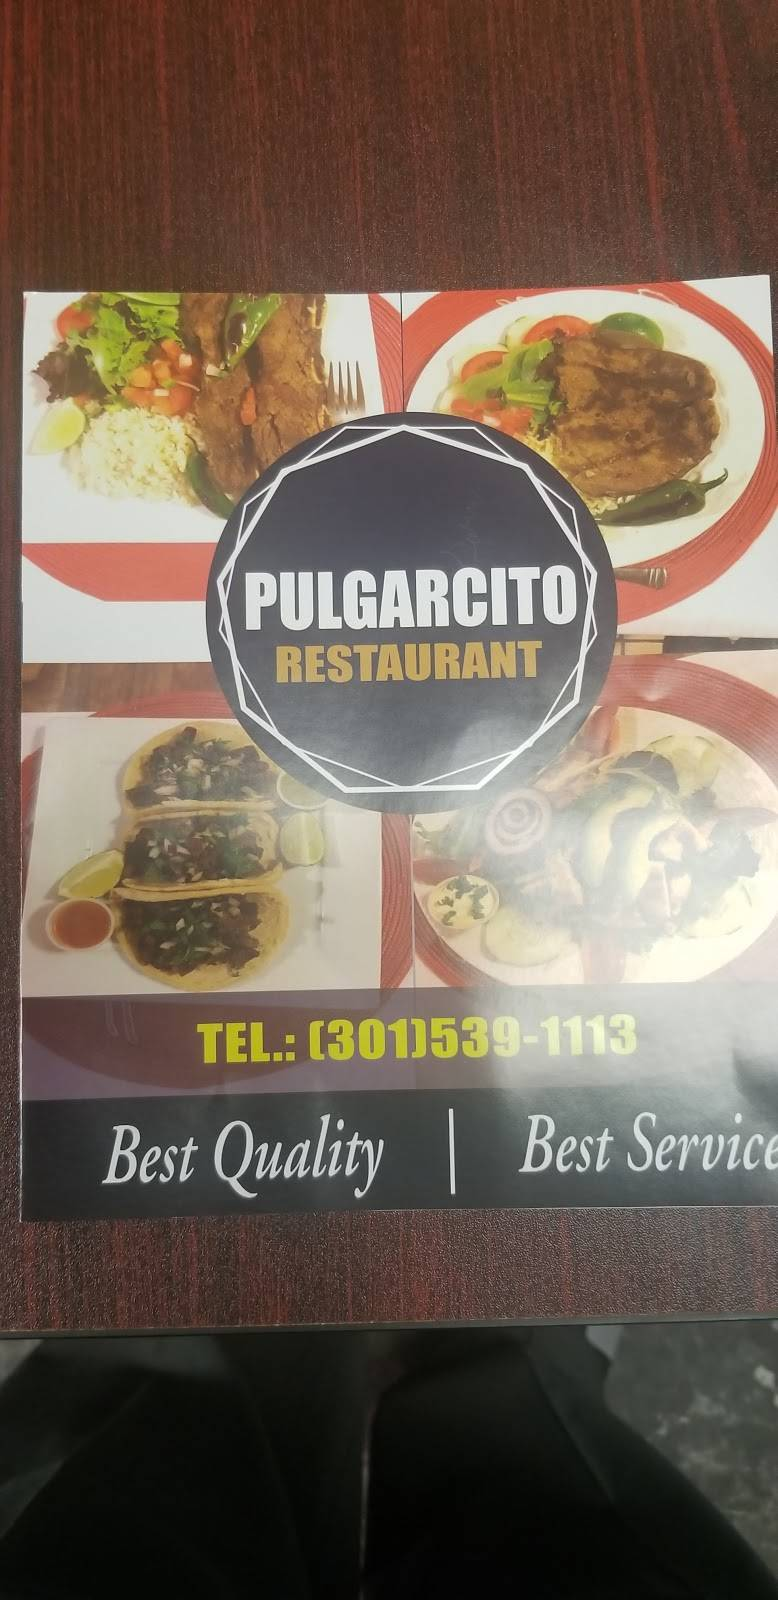 El Pulgarcito | restaurant | Seabrook, MD 20706, USA | 3015391113 OR +1 301-539-1113